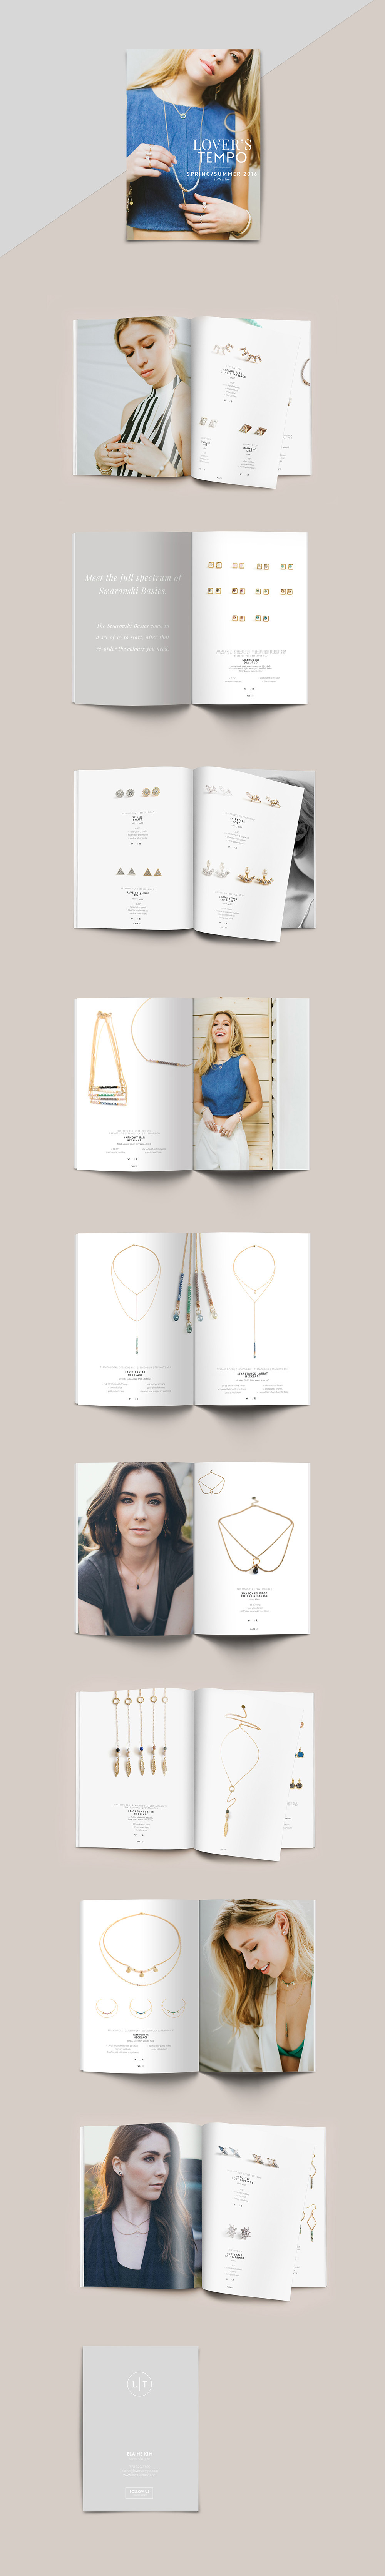 SS17 Lover's Tempo jewellery Lookbook layout Design | www.alicia-carvalho.com